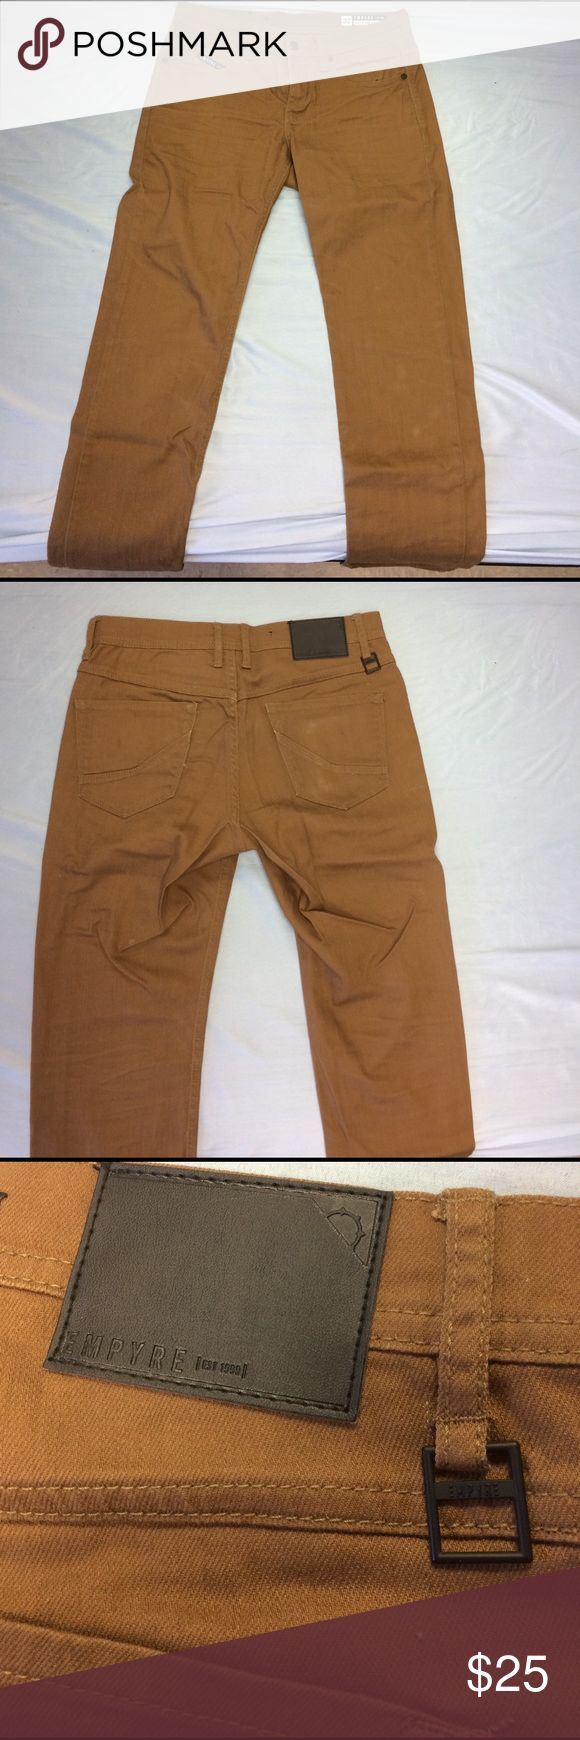 EMPYRE Skeletor Dark Khaki Skinny Jeans (32x32) NWOT EMPYRE Skeletor Dark Khaki Skinny Fit Jeans. Size 32x32. Dark Beige. Key holder on back belt loop. From Zumiez. empyre Pants Chinos & Khakis